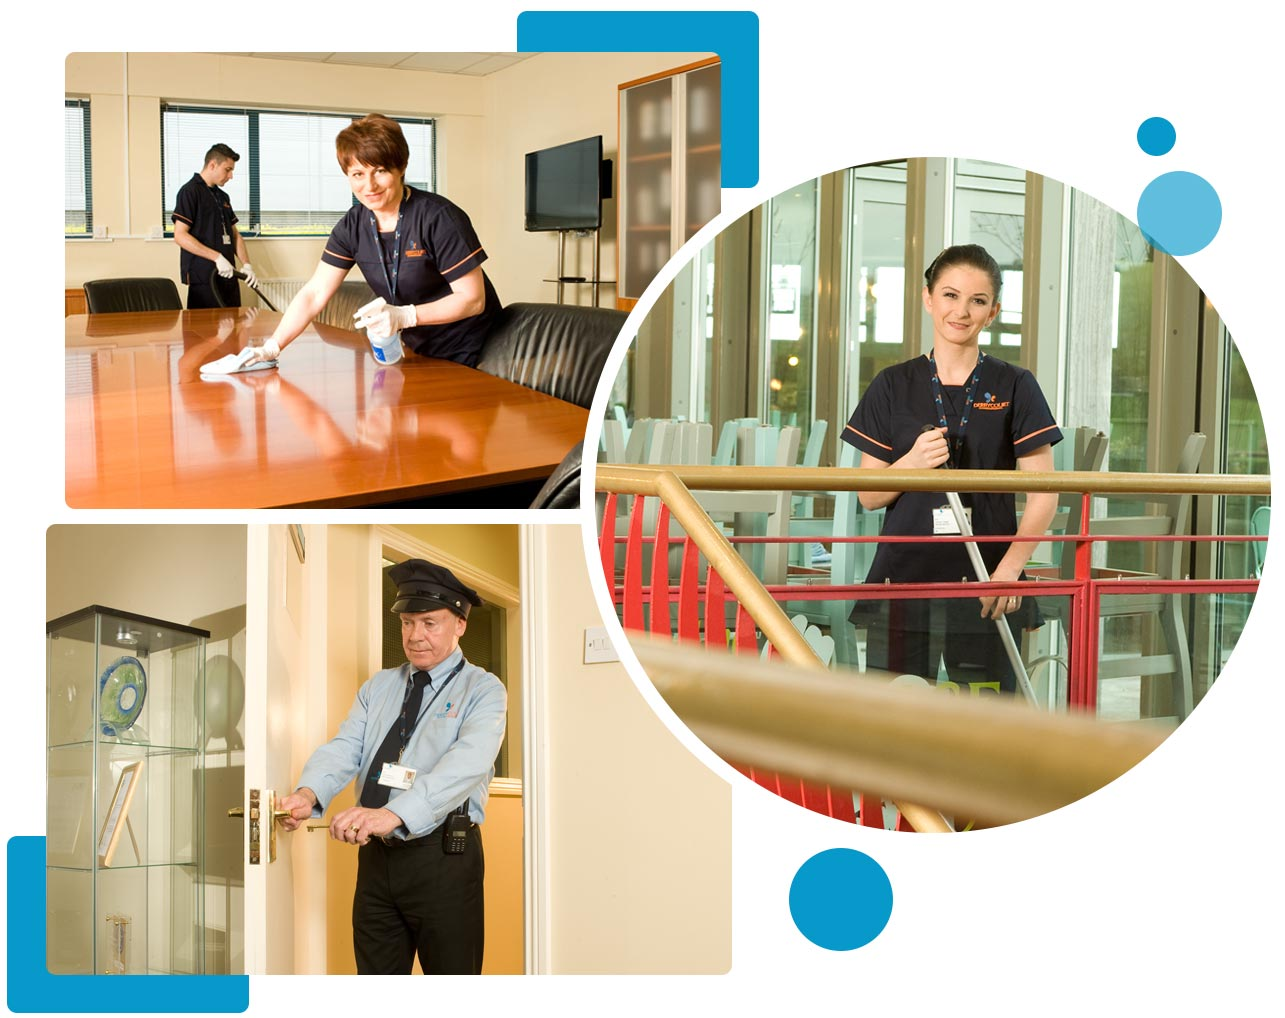 Derrycourt Team Cleaning the Office table and floor, Security staff locking the door